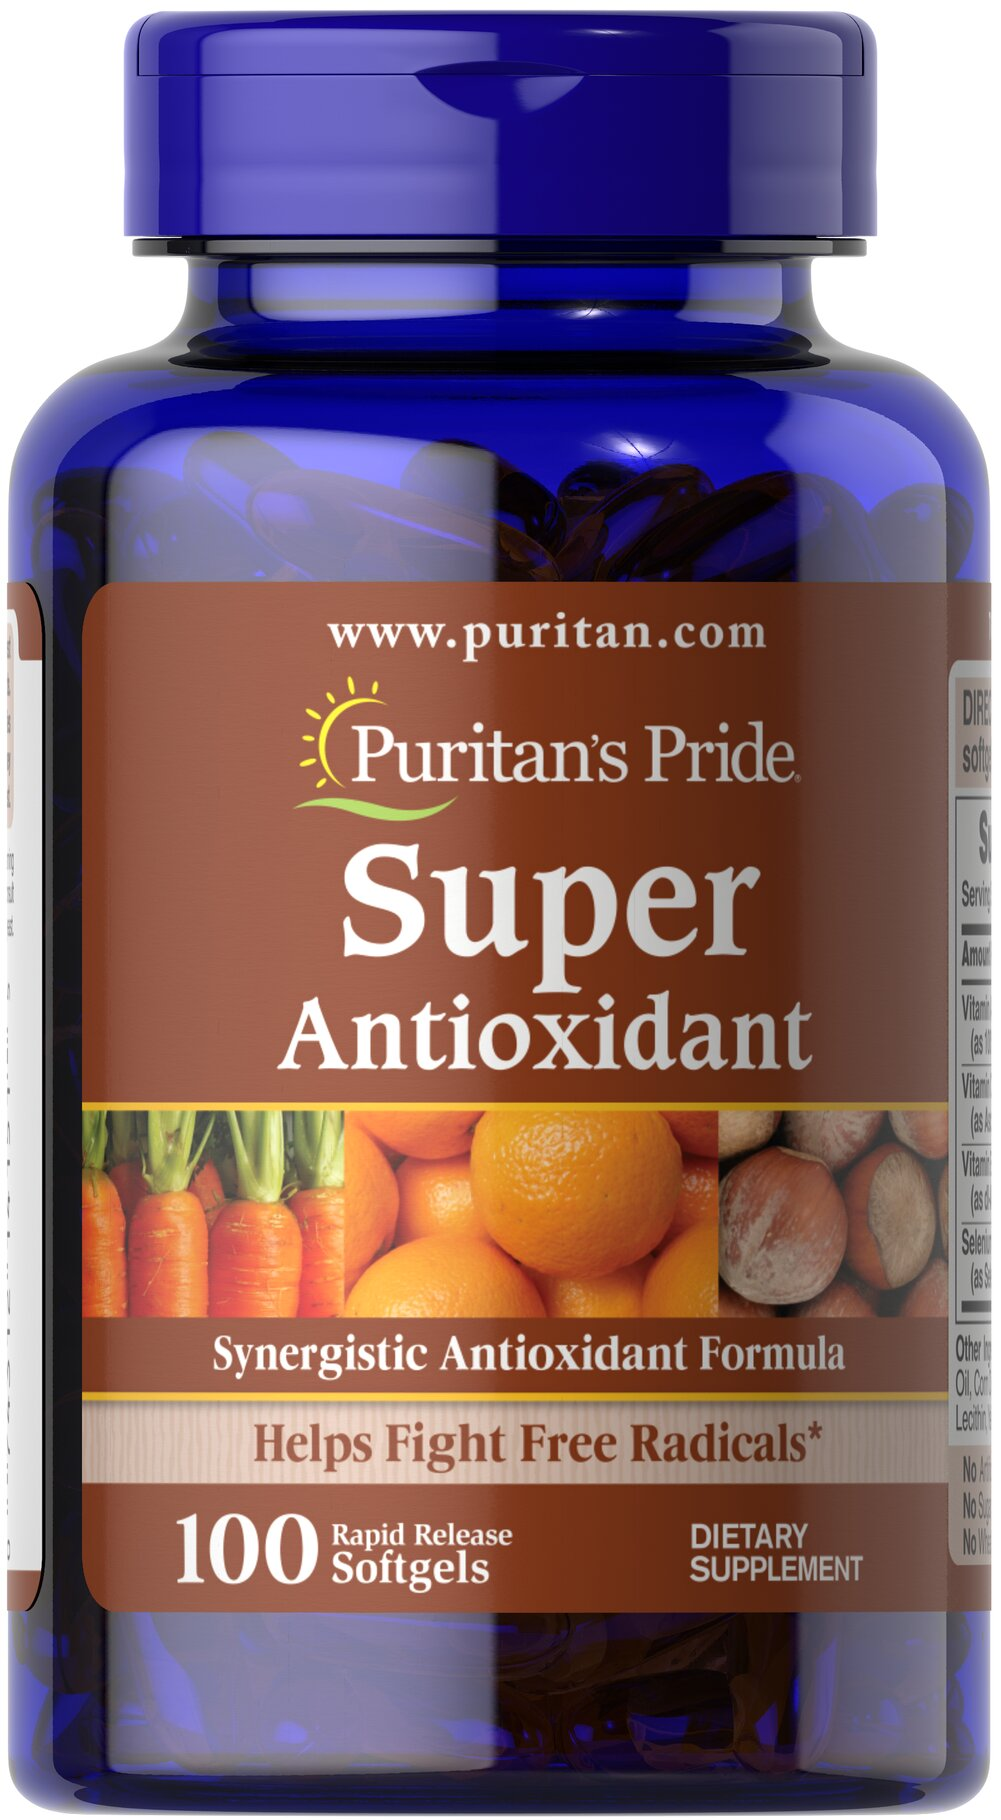 Super Antioxidant Formula** Thumbnail Alternate Bottle View